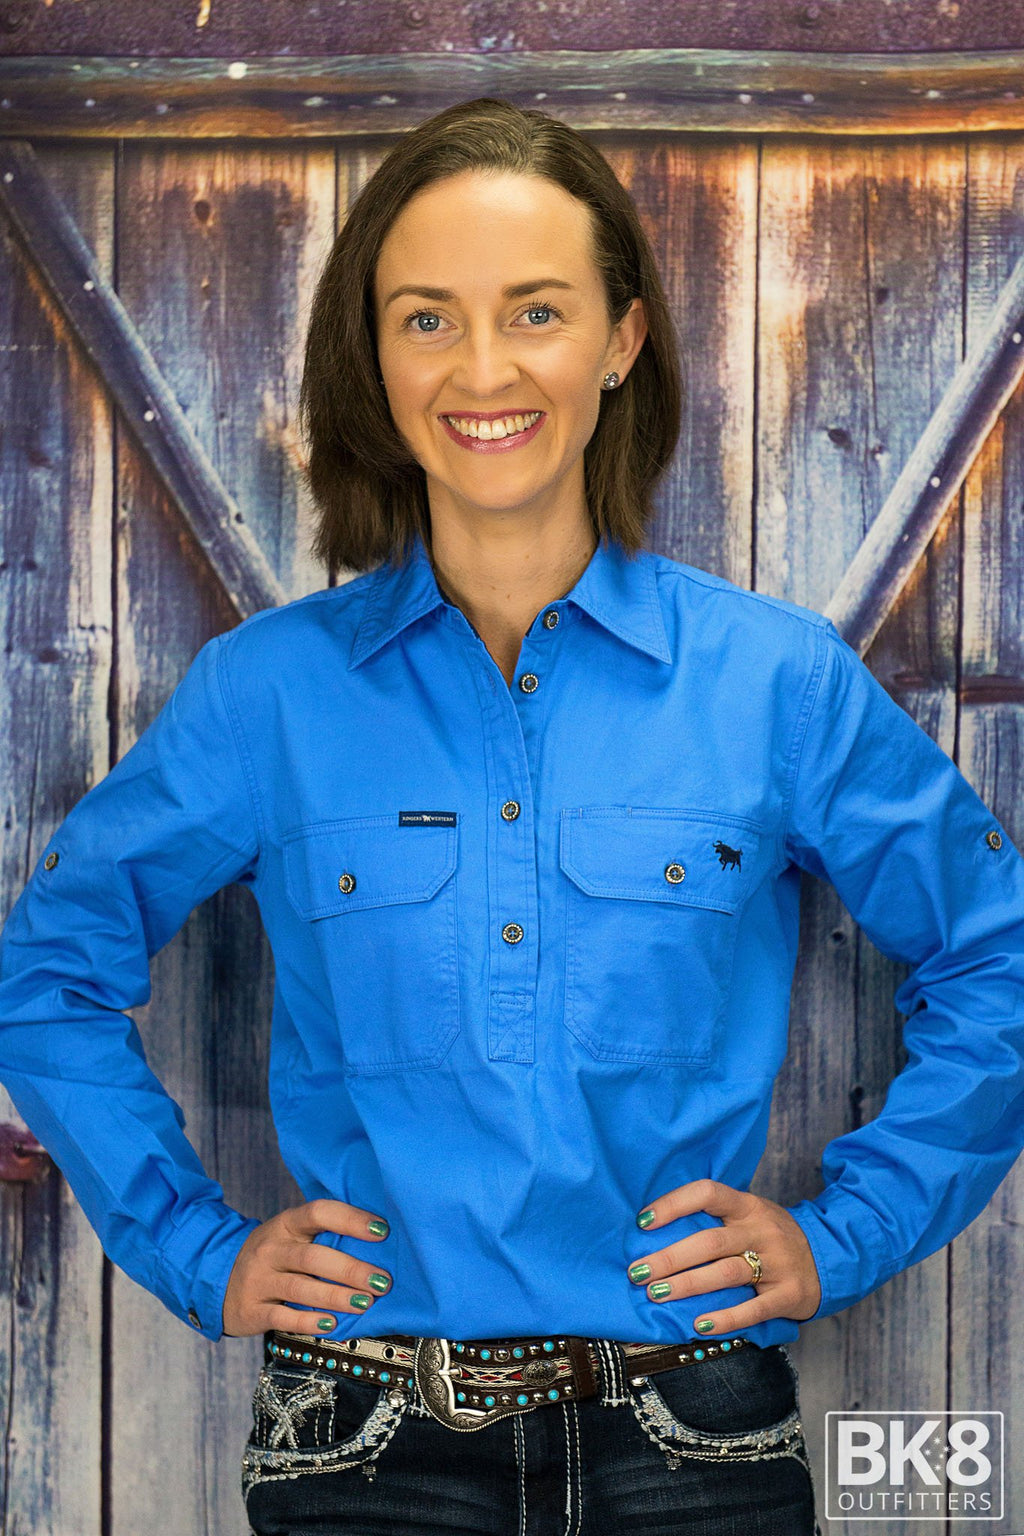 Ringers Western | Womens | Work Shirts | HALF Button | Long Sleeve | Pentecost | Blue - BK8 Outfitters Australia